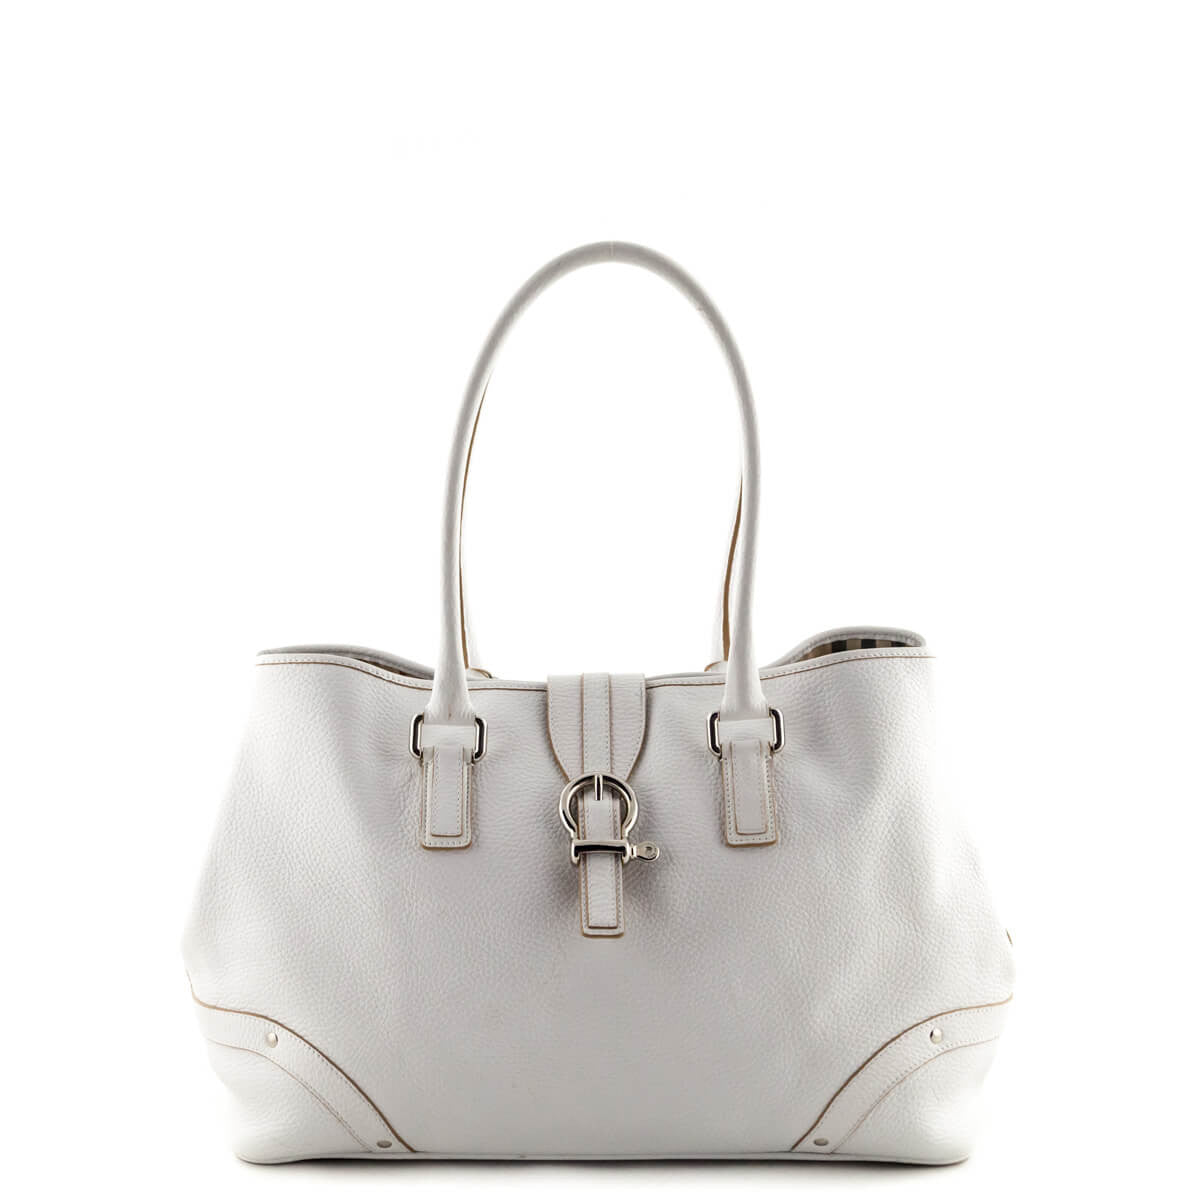 613000a144bf Burberry White Pebbled Leather Medium Buckle Detail Shoulder Bag - LOVE  that BAG - Preowned Authentic ...